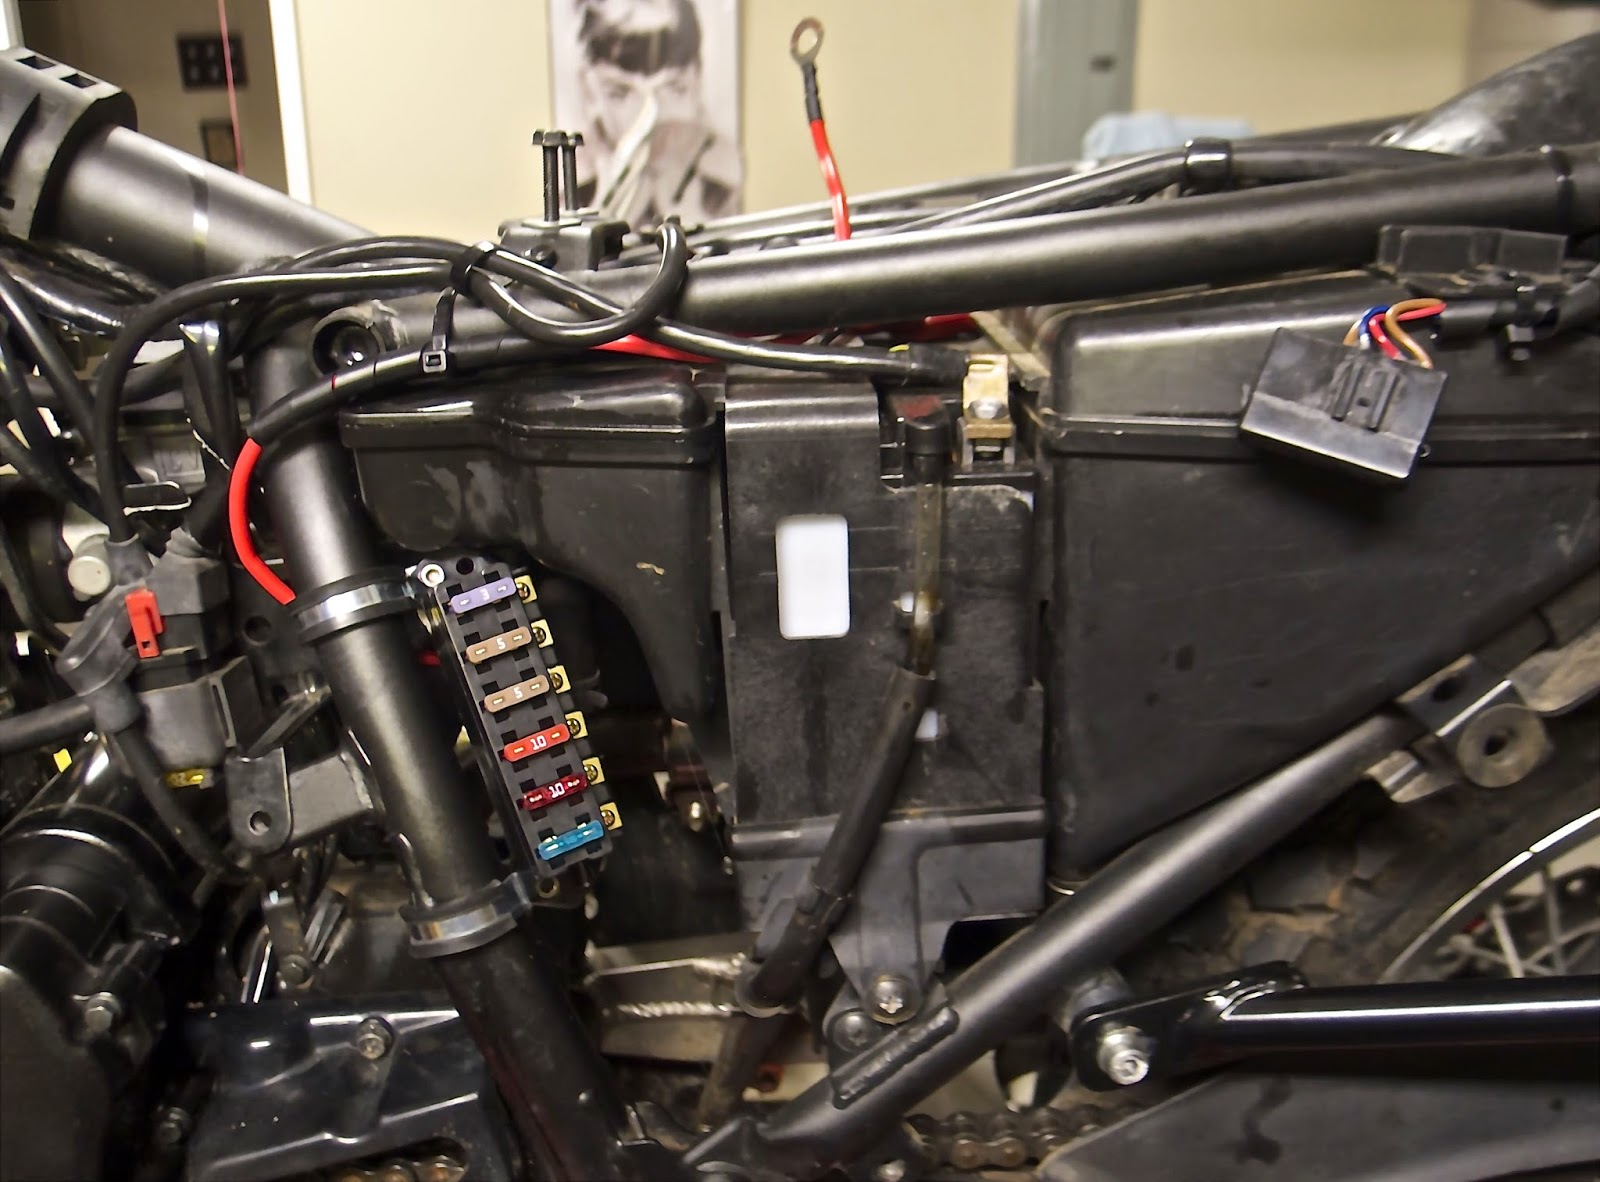 hight resolution of also wanted to located it somewhere where i could easily access it to check and replace fuses without having to disassemble half the bike to reach it